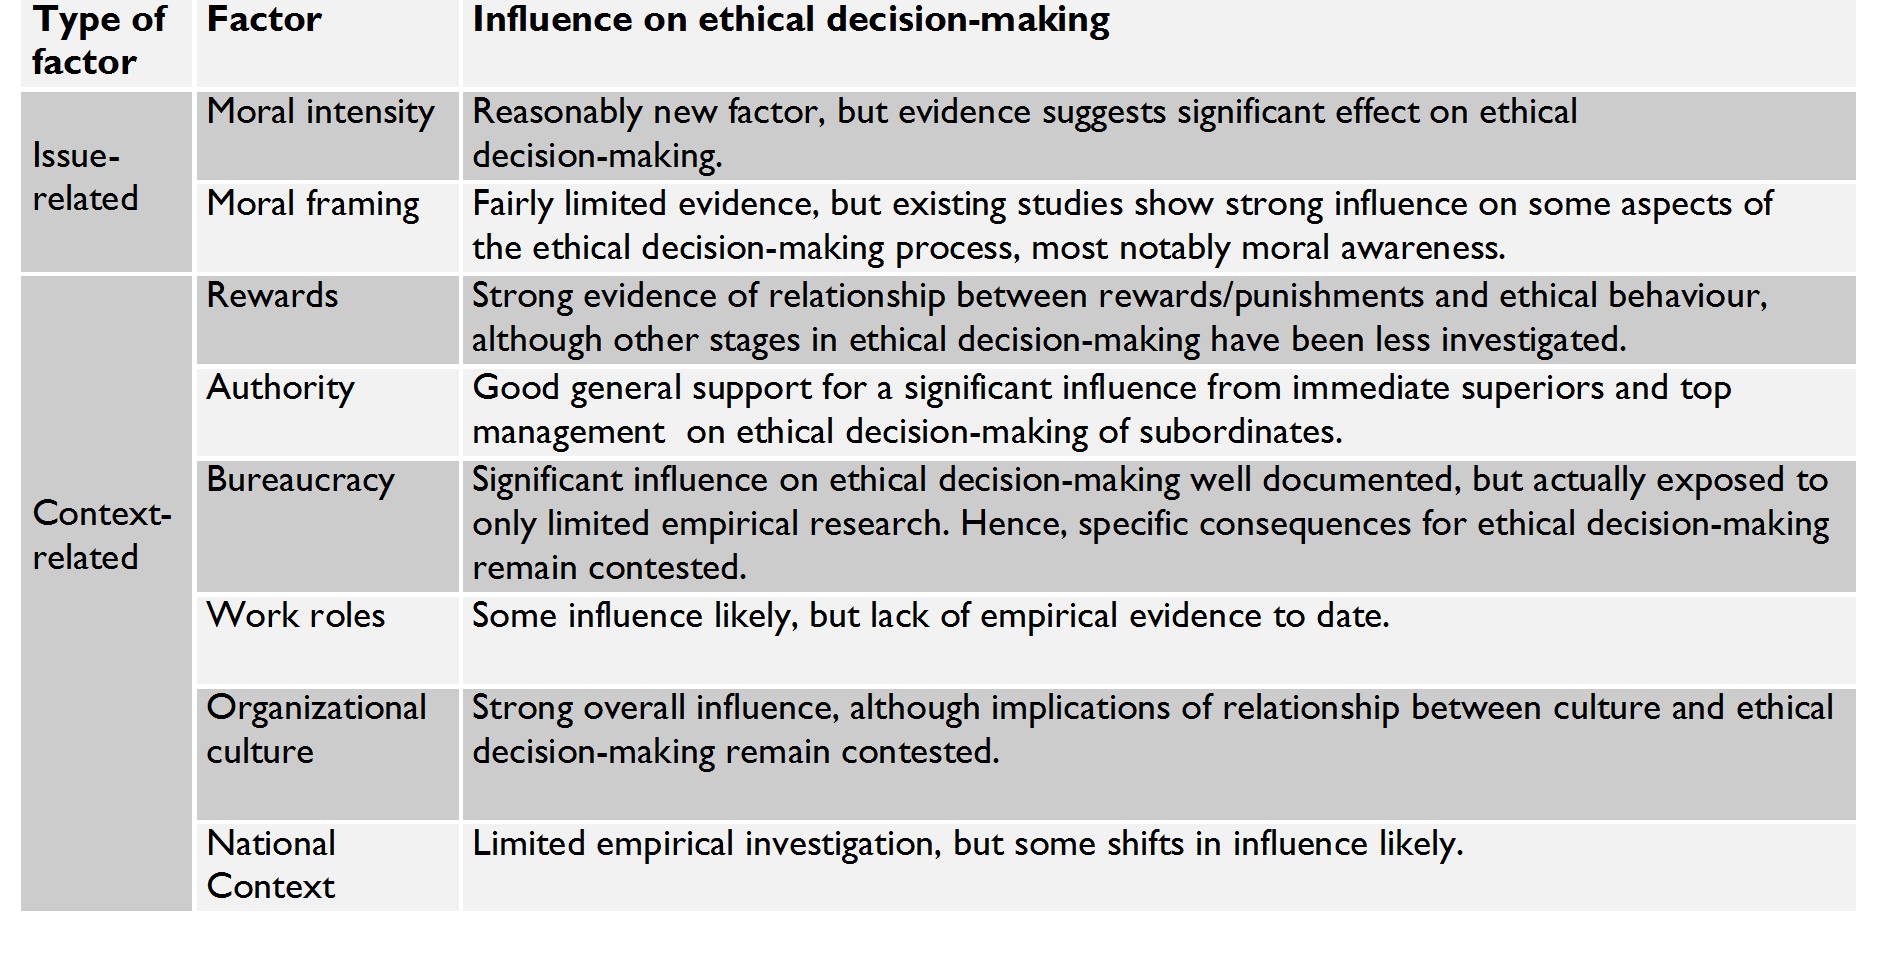 influences on ethics Ethics in decision making impacts the choices for words and actions  this focusing decision can influence criteria for decisions throughout the network of business decisions (the decisions in blue), directly influencing ethical decision making and organizational conduct.